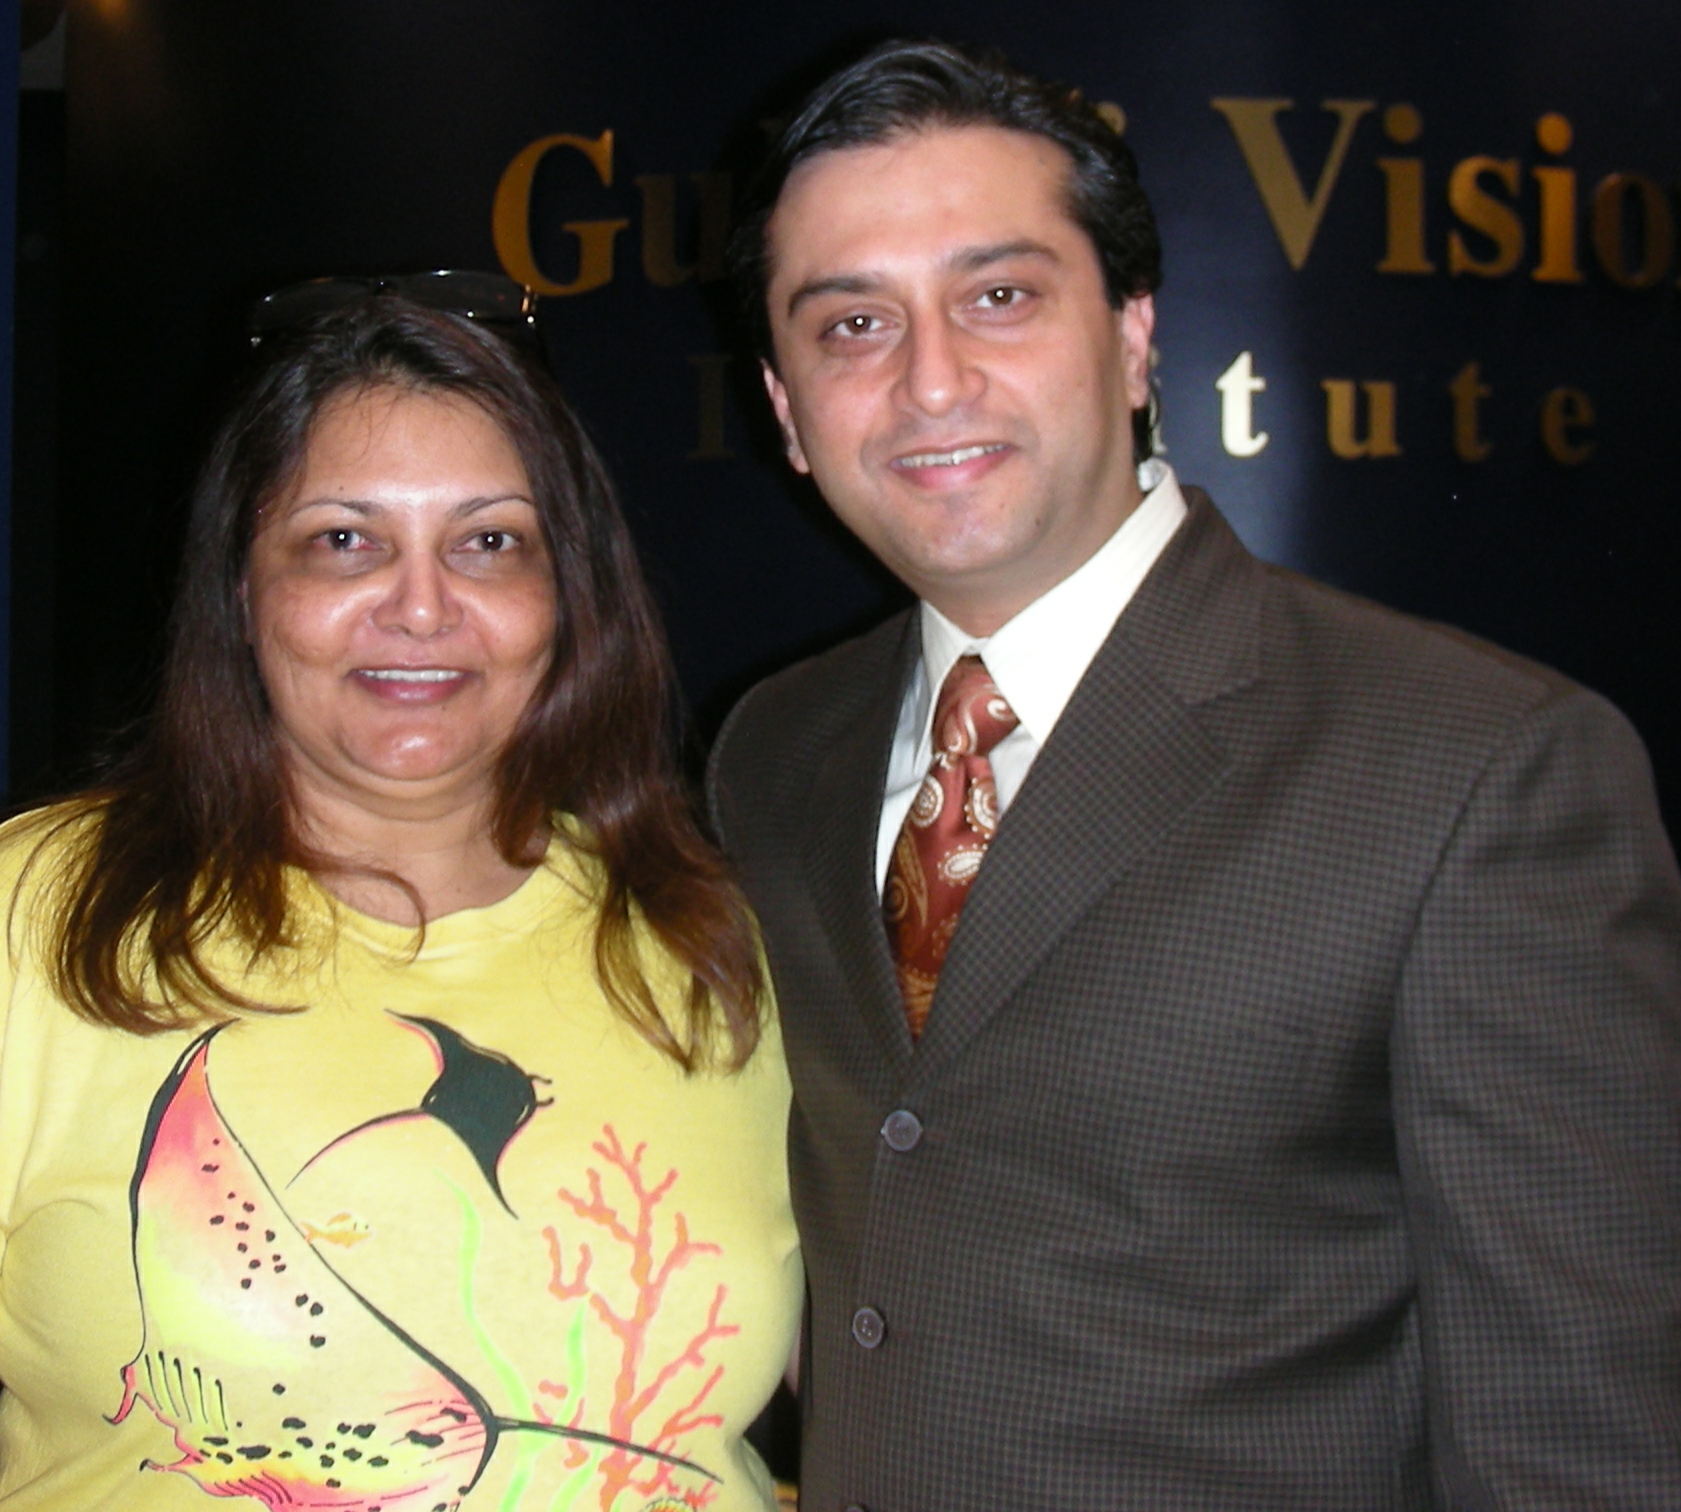 Bernadette Persaud Pterygium surgery Gulani Vision Institute Maryland